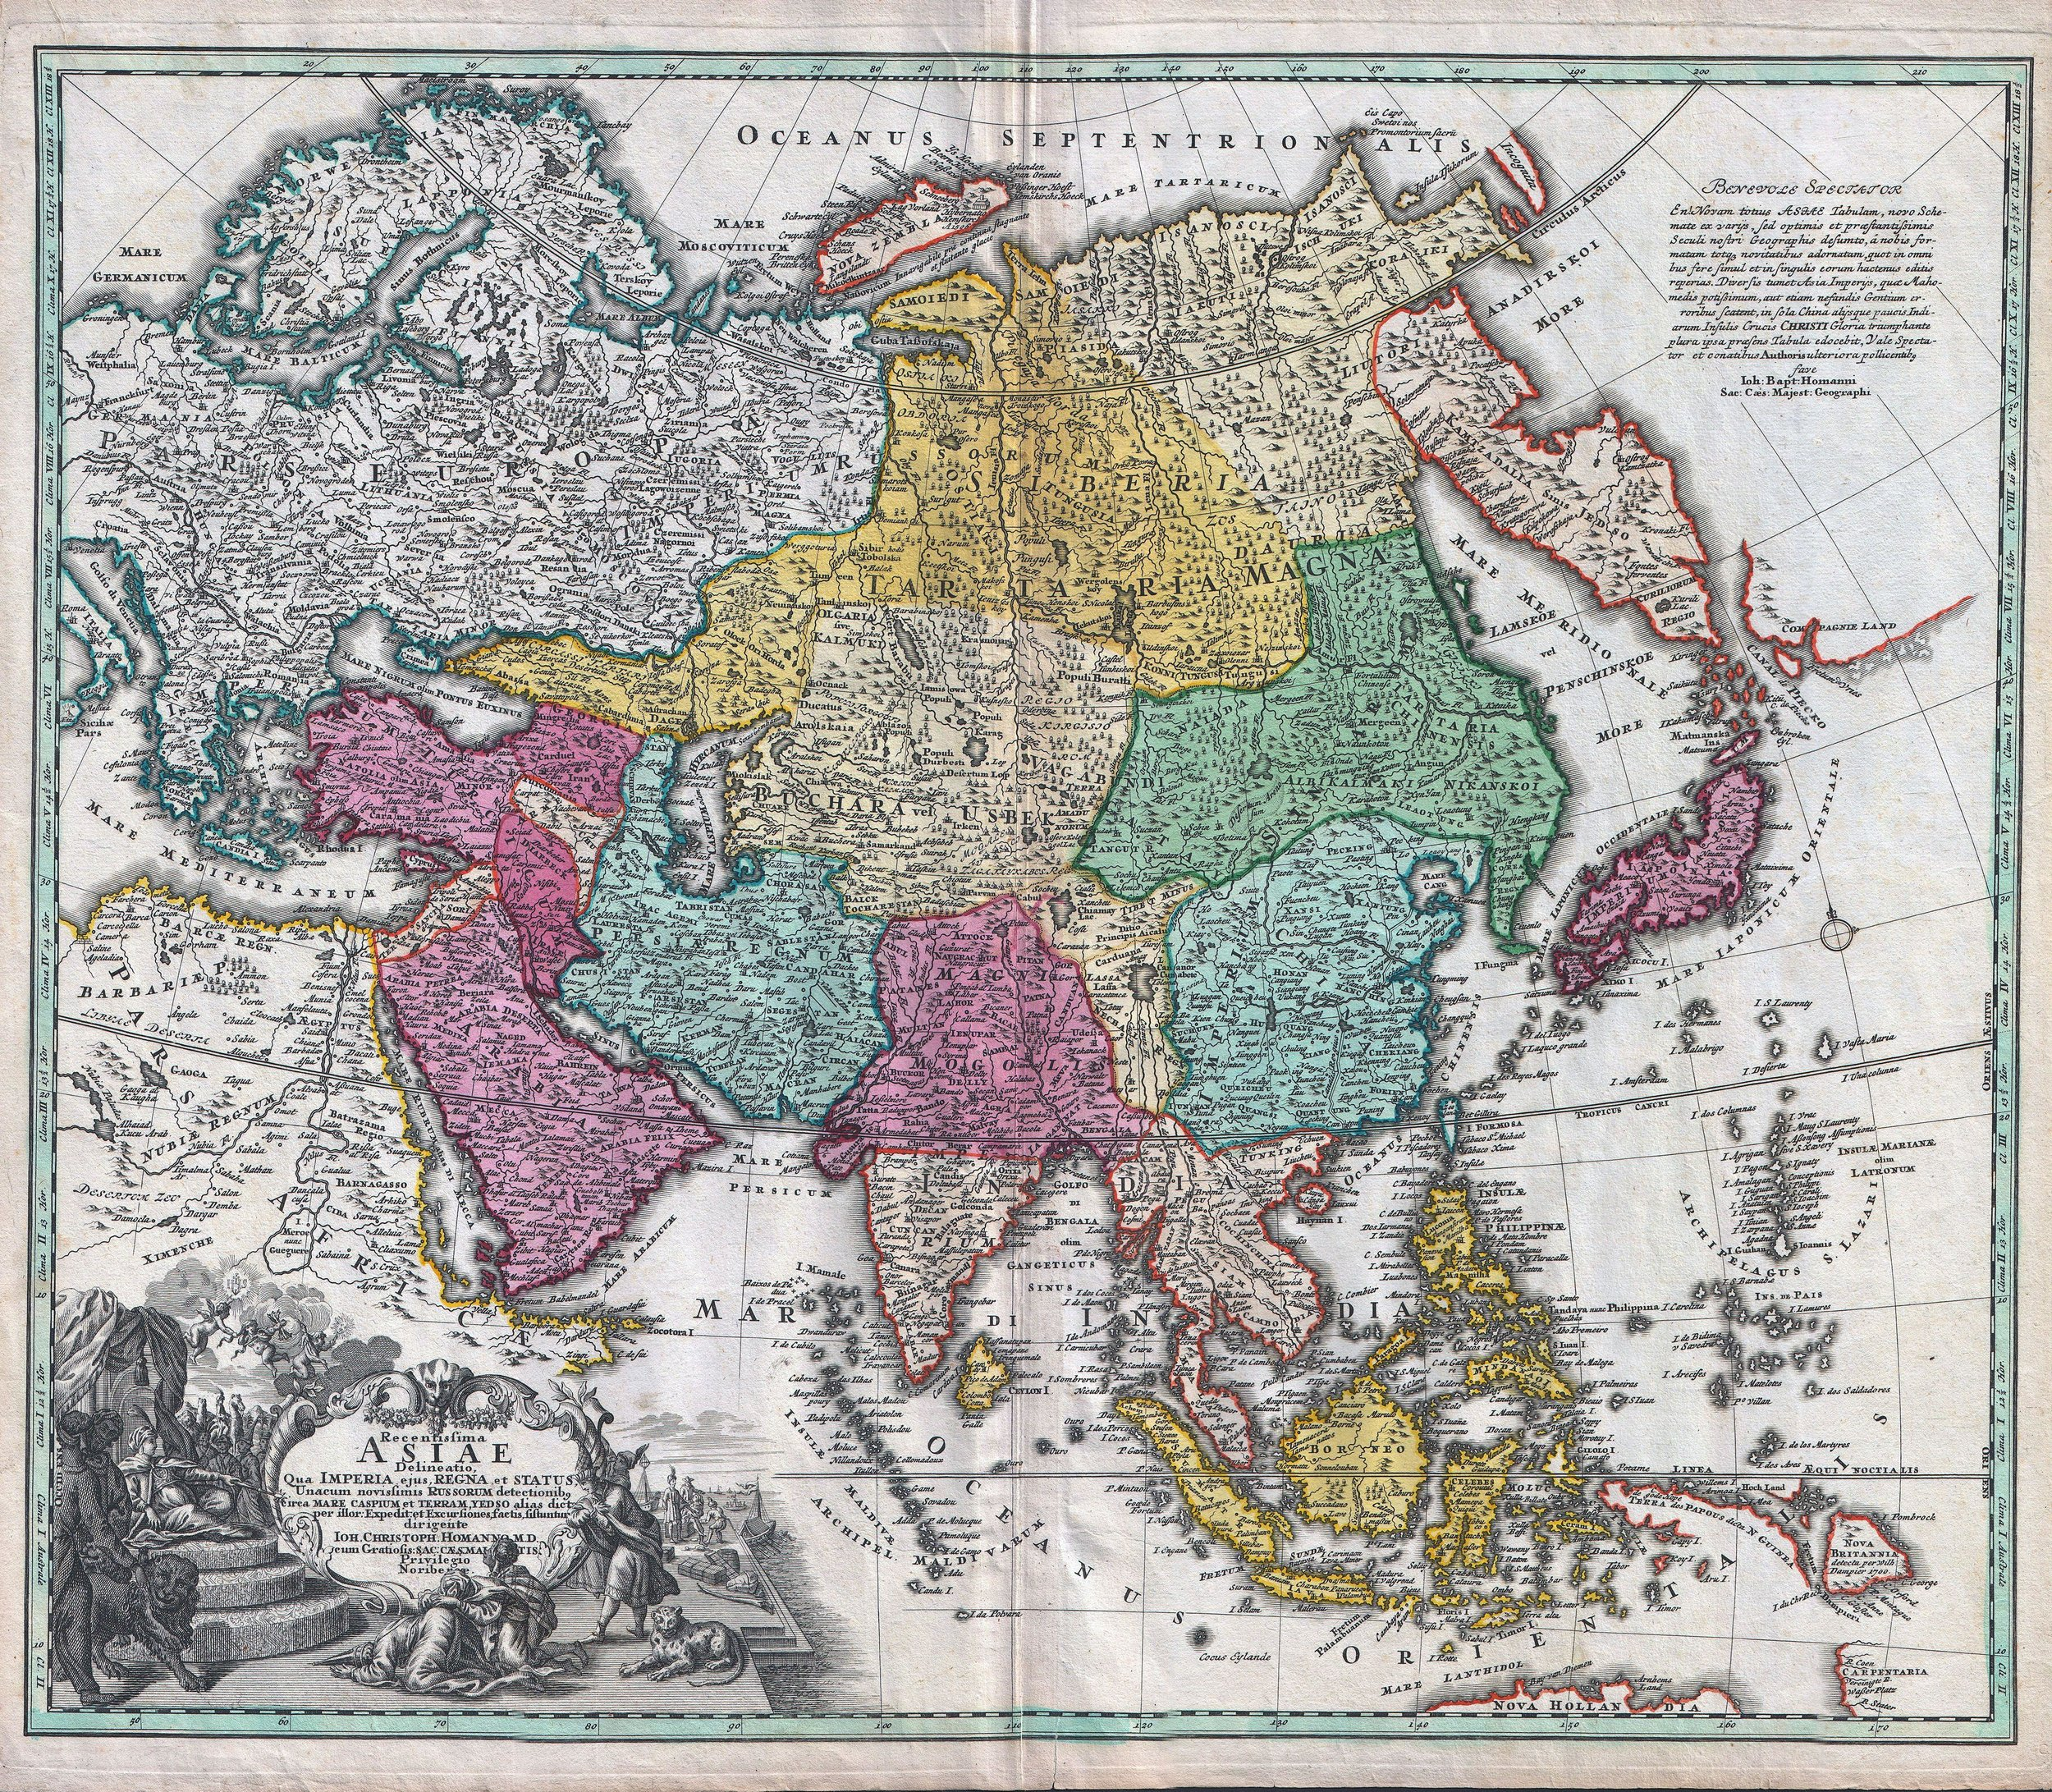 1730_C._Homann_Map_of_Asia_-_Geographicus_-_Asiae-homann-1730.jpg